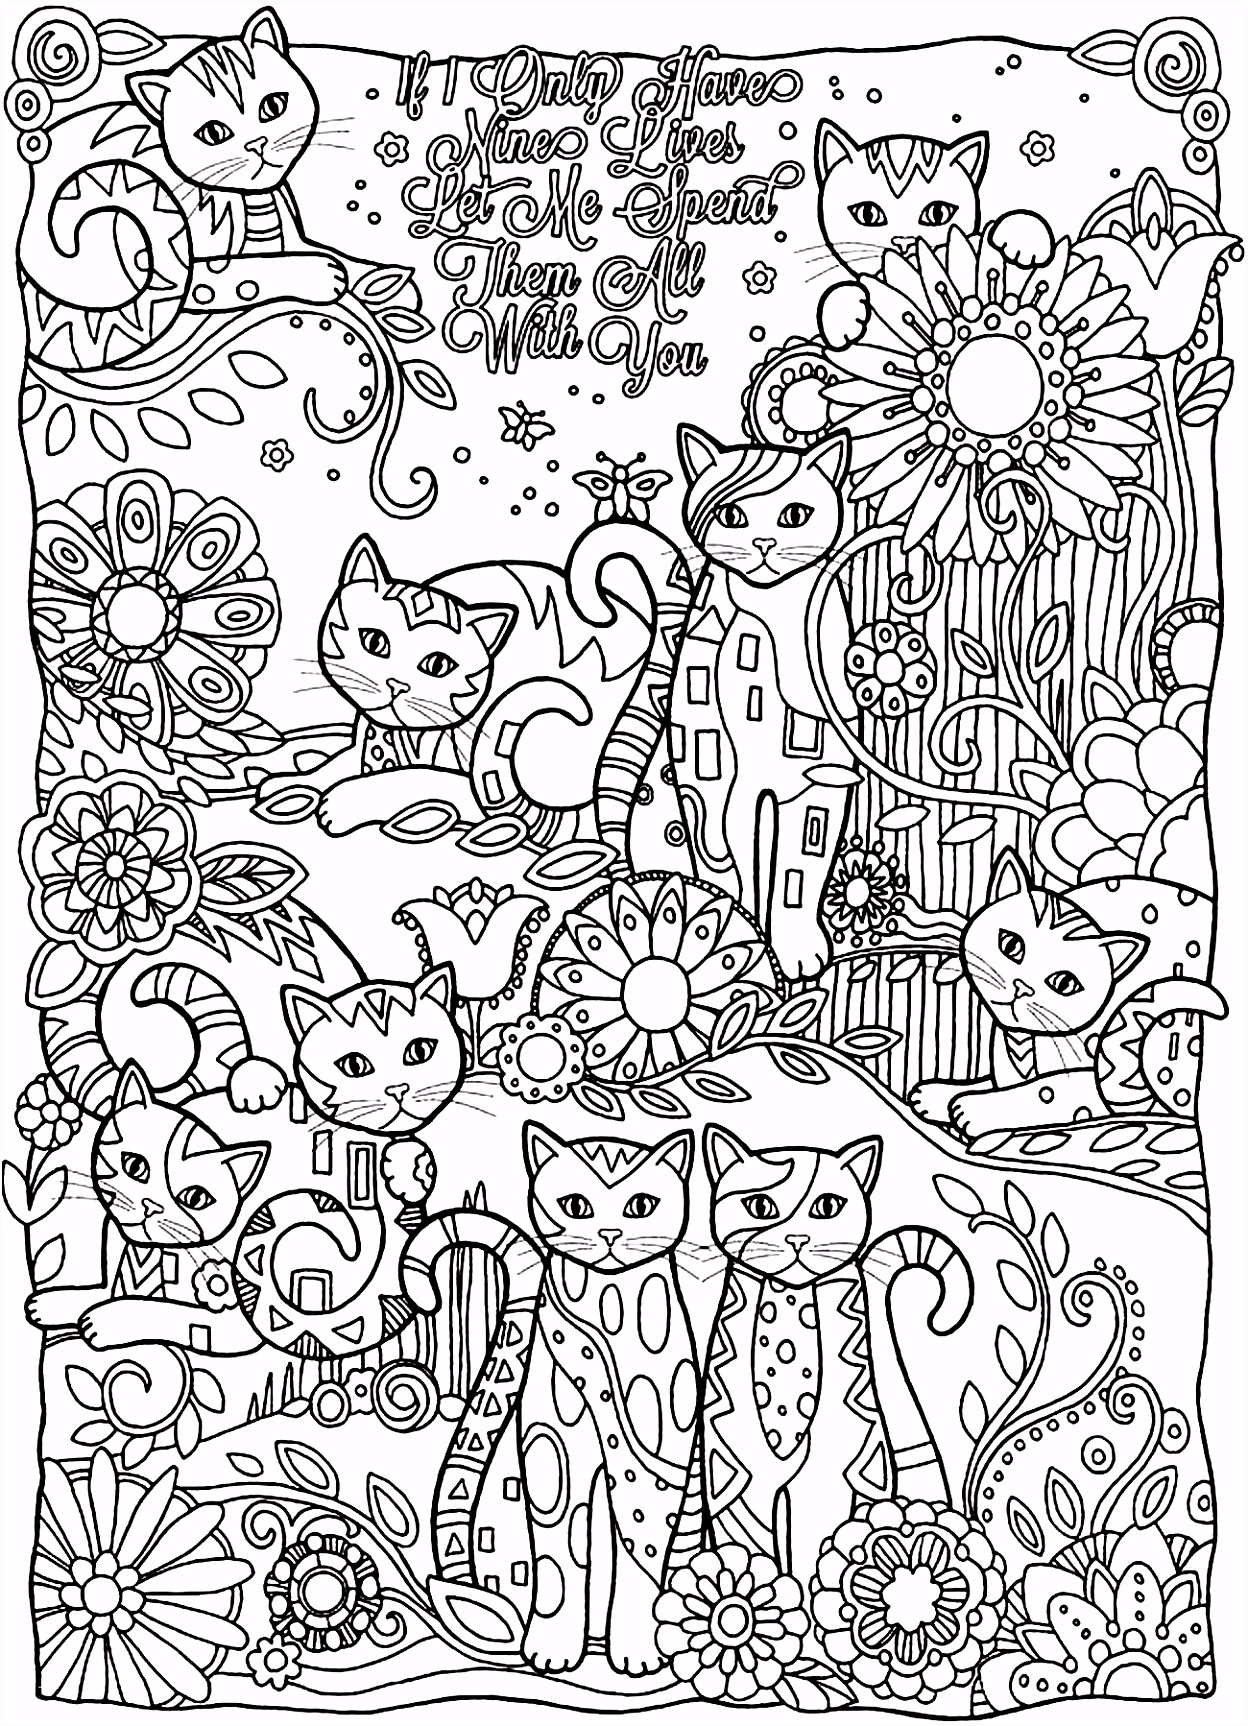 coloring pages spiderman Archives Page 3 of 3 Katesgrove